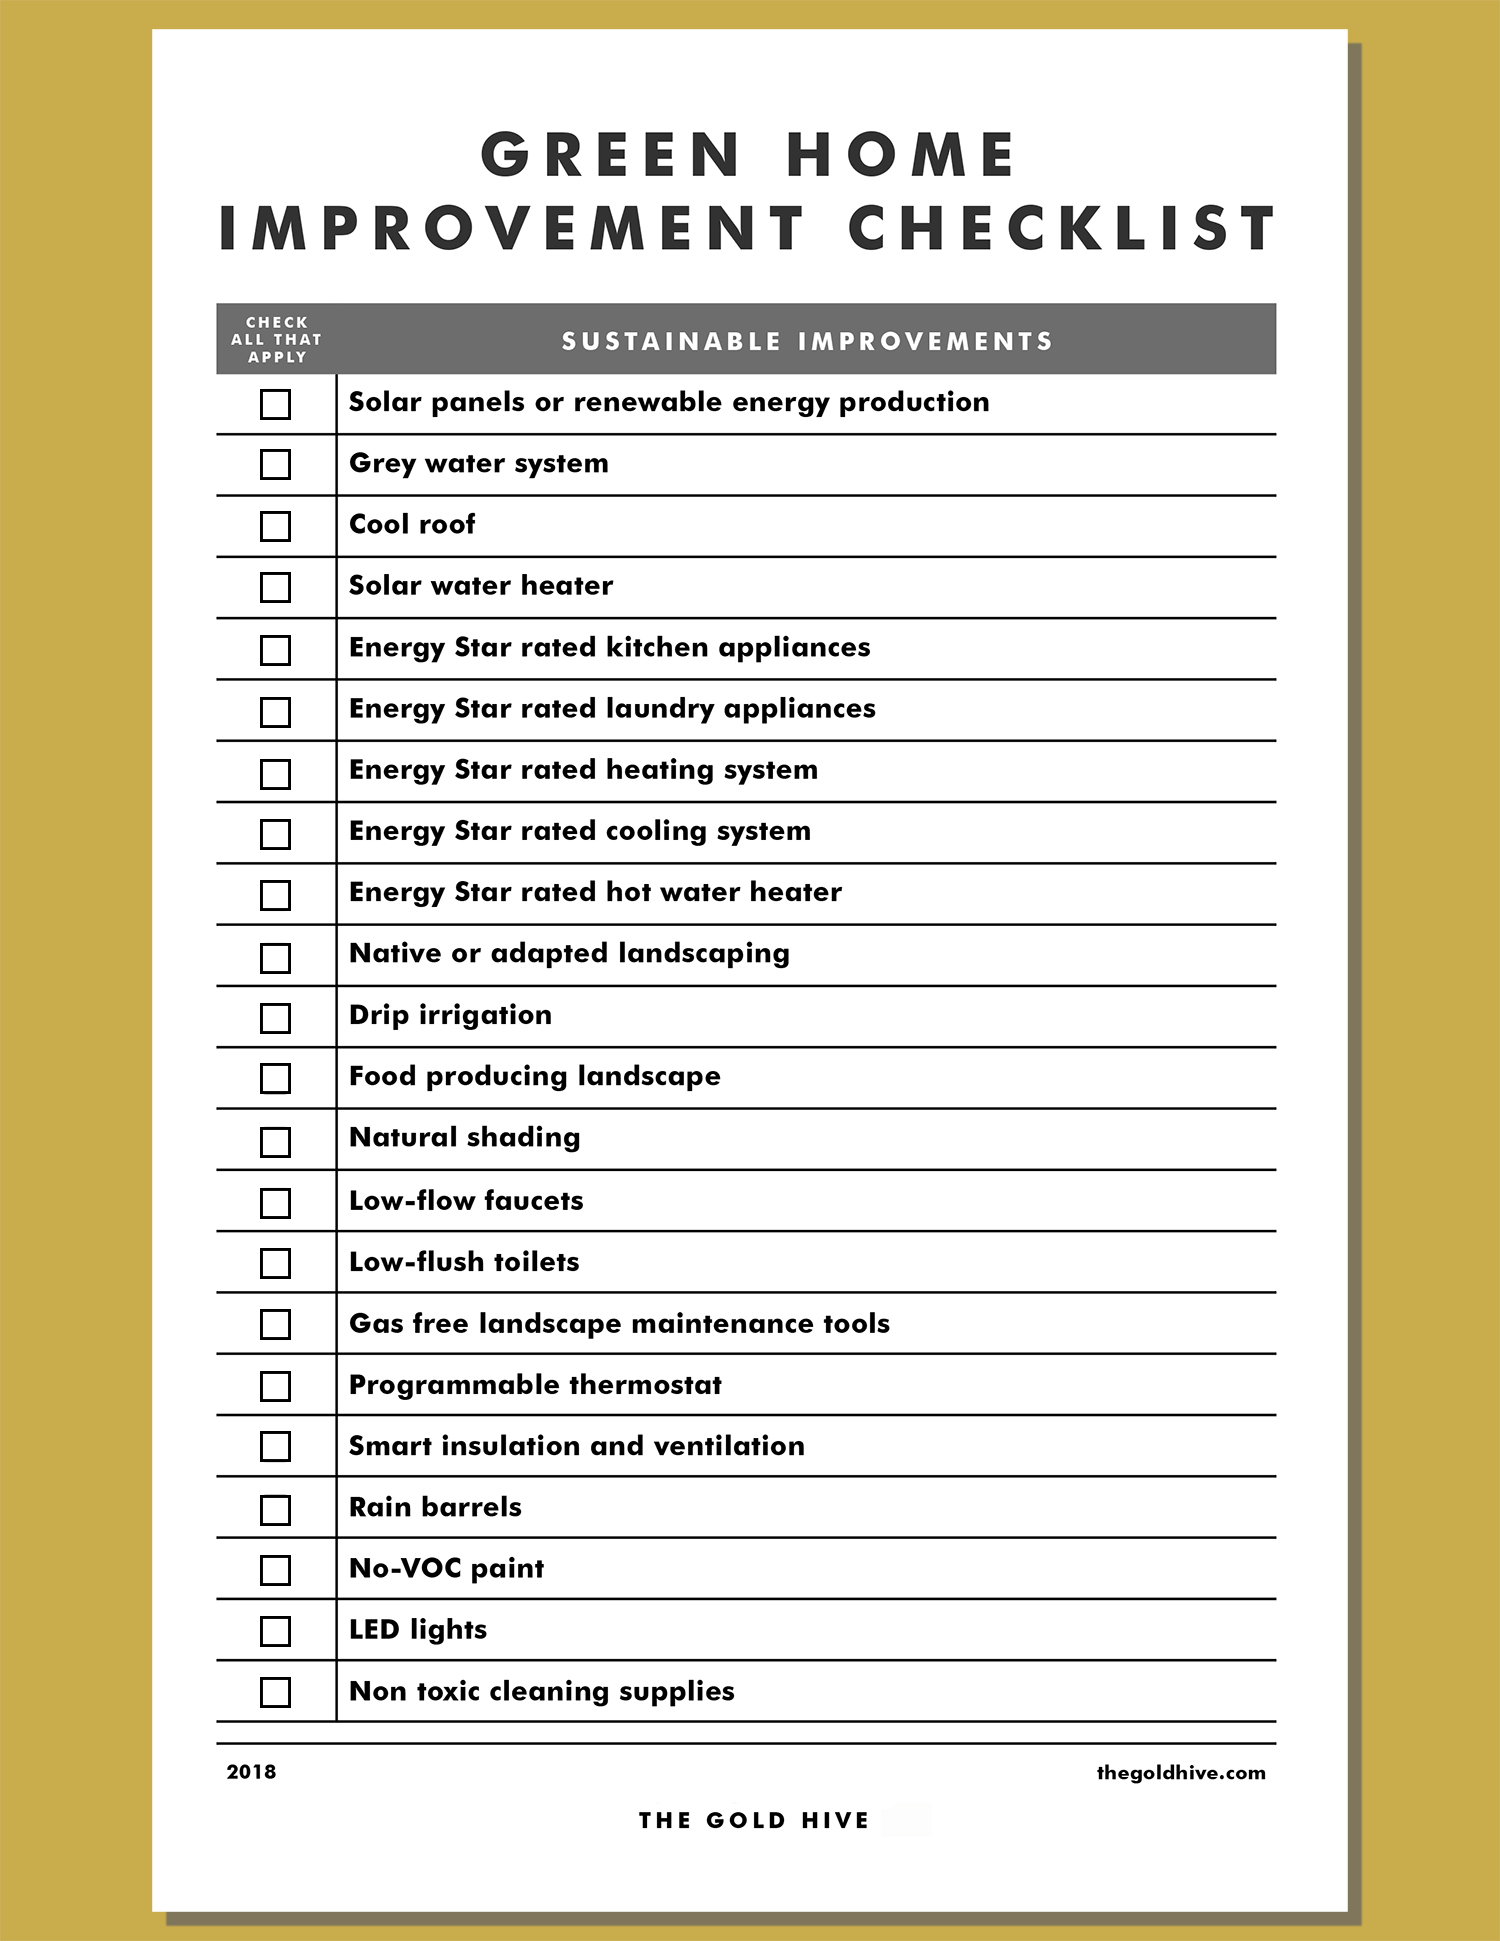 Green Home Improvement Checklist.jpg